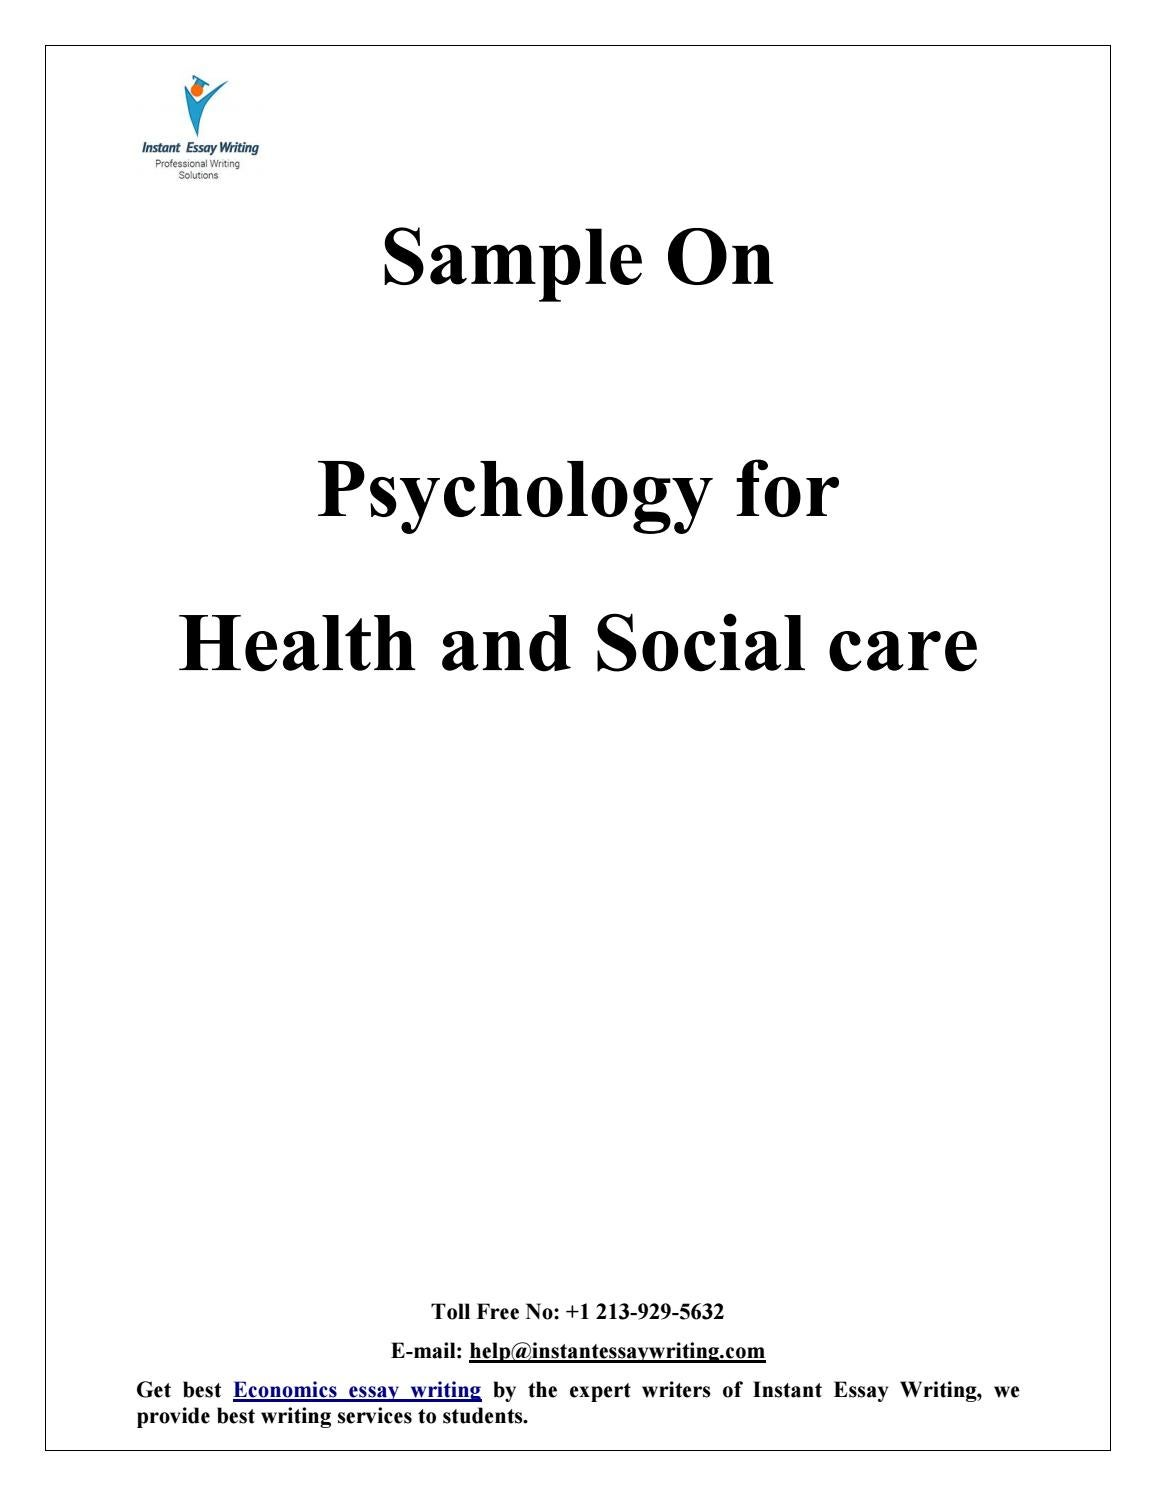 induction in health and social care essay Dissertation and essay samples:managing quality in health and social care.